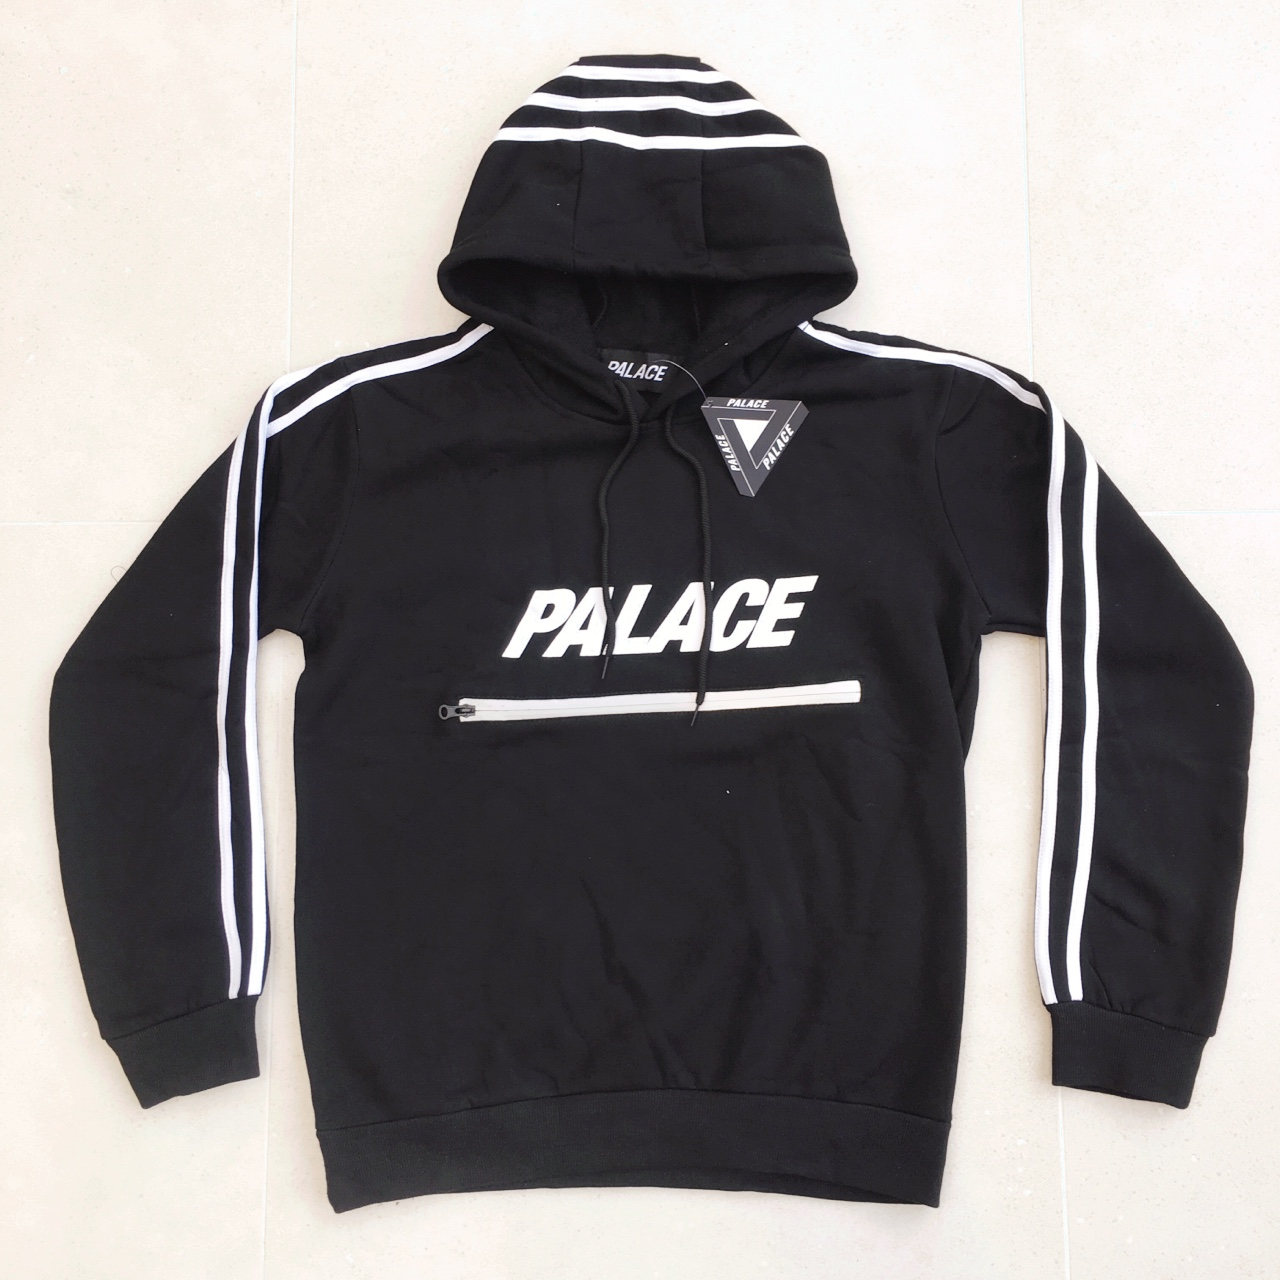 discount so cheap well known palace x adidas originals hoodie off 63% - www.charcuterie ...